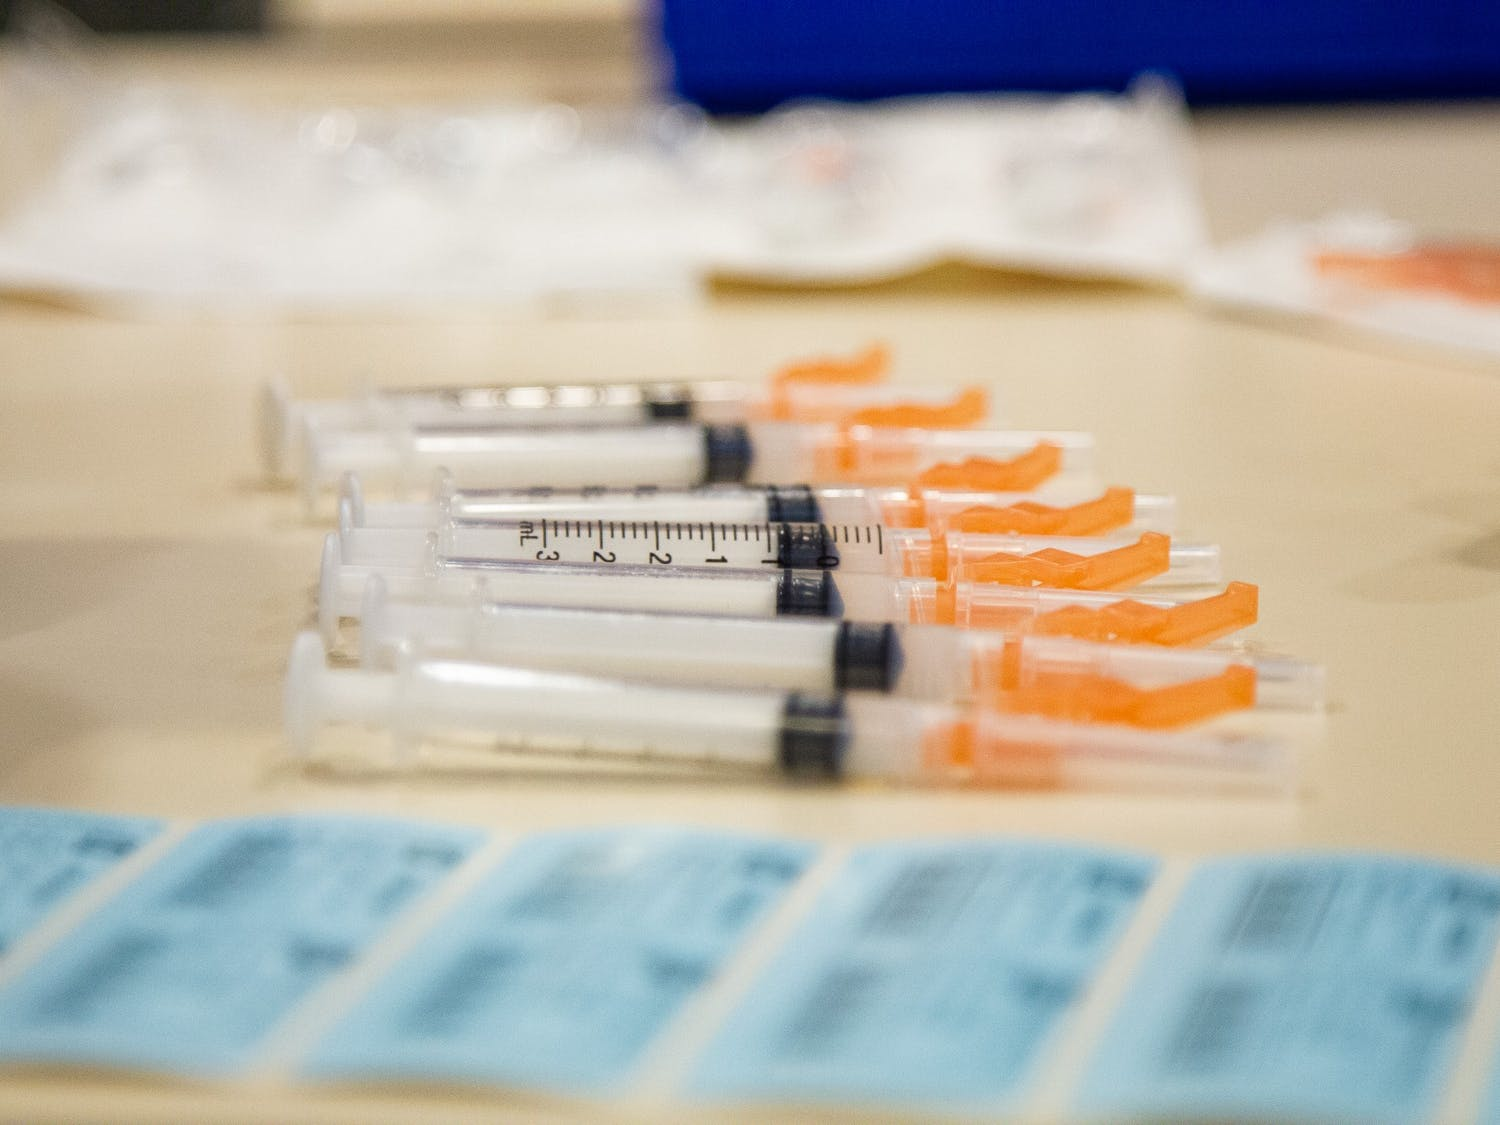 Empty syringes wait to be prepared with a dose of the COVID-19 vaccine on Thursday, Jan. 21, 2021 in the Friday Center in Chapel Hill.